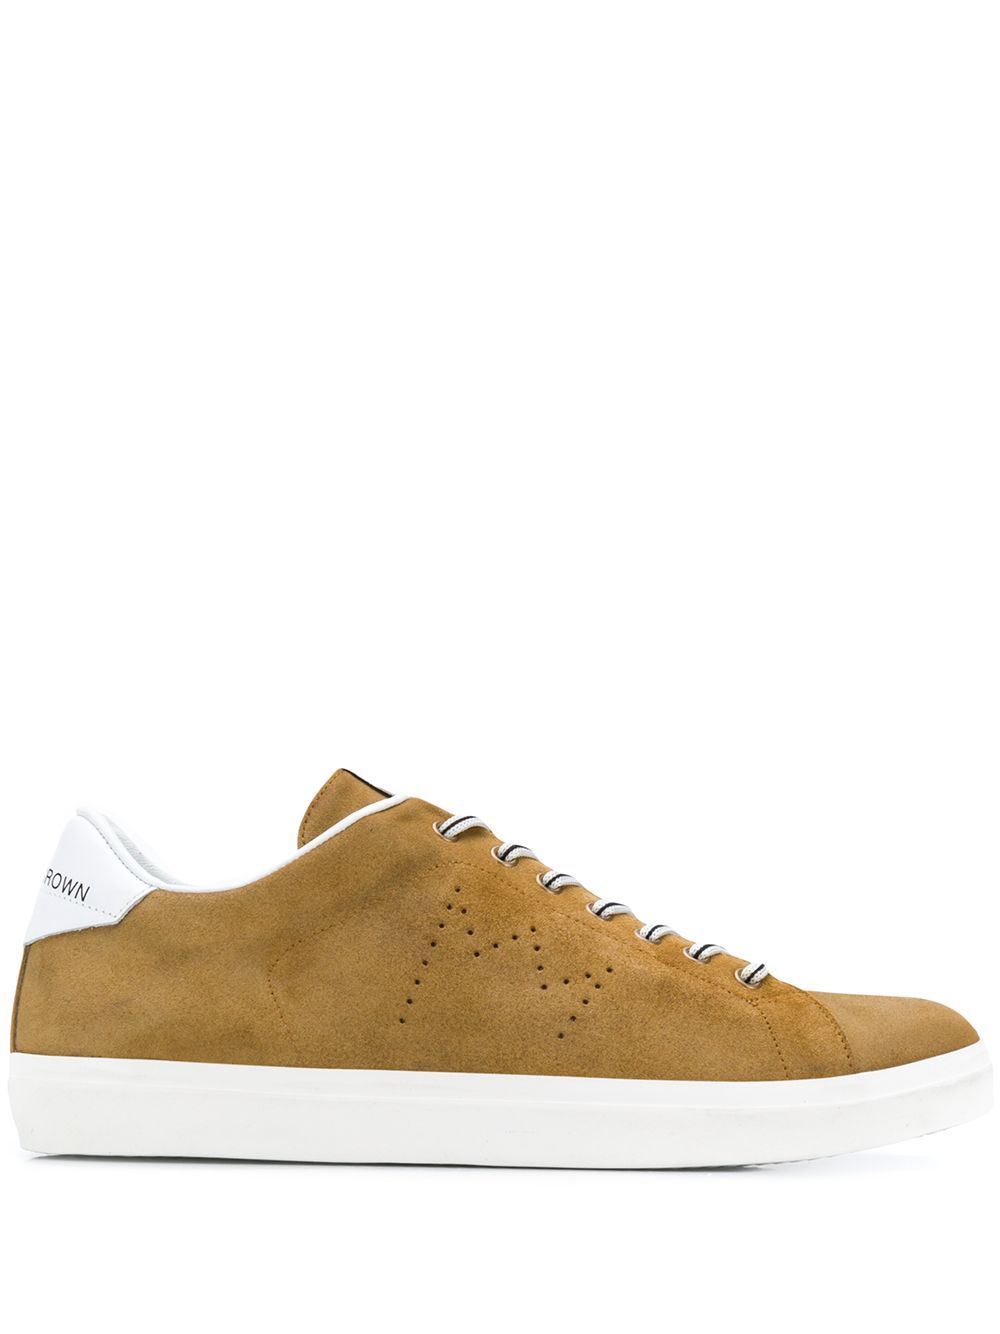 LEATHER CROWN LEATHER CROWN LC06 SNEAKERS BROWN